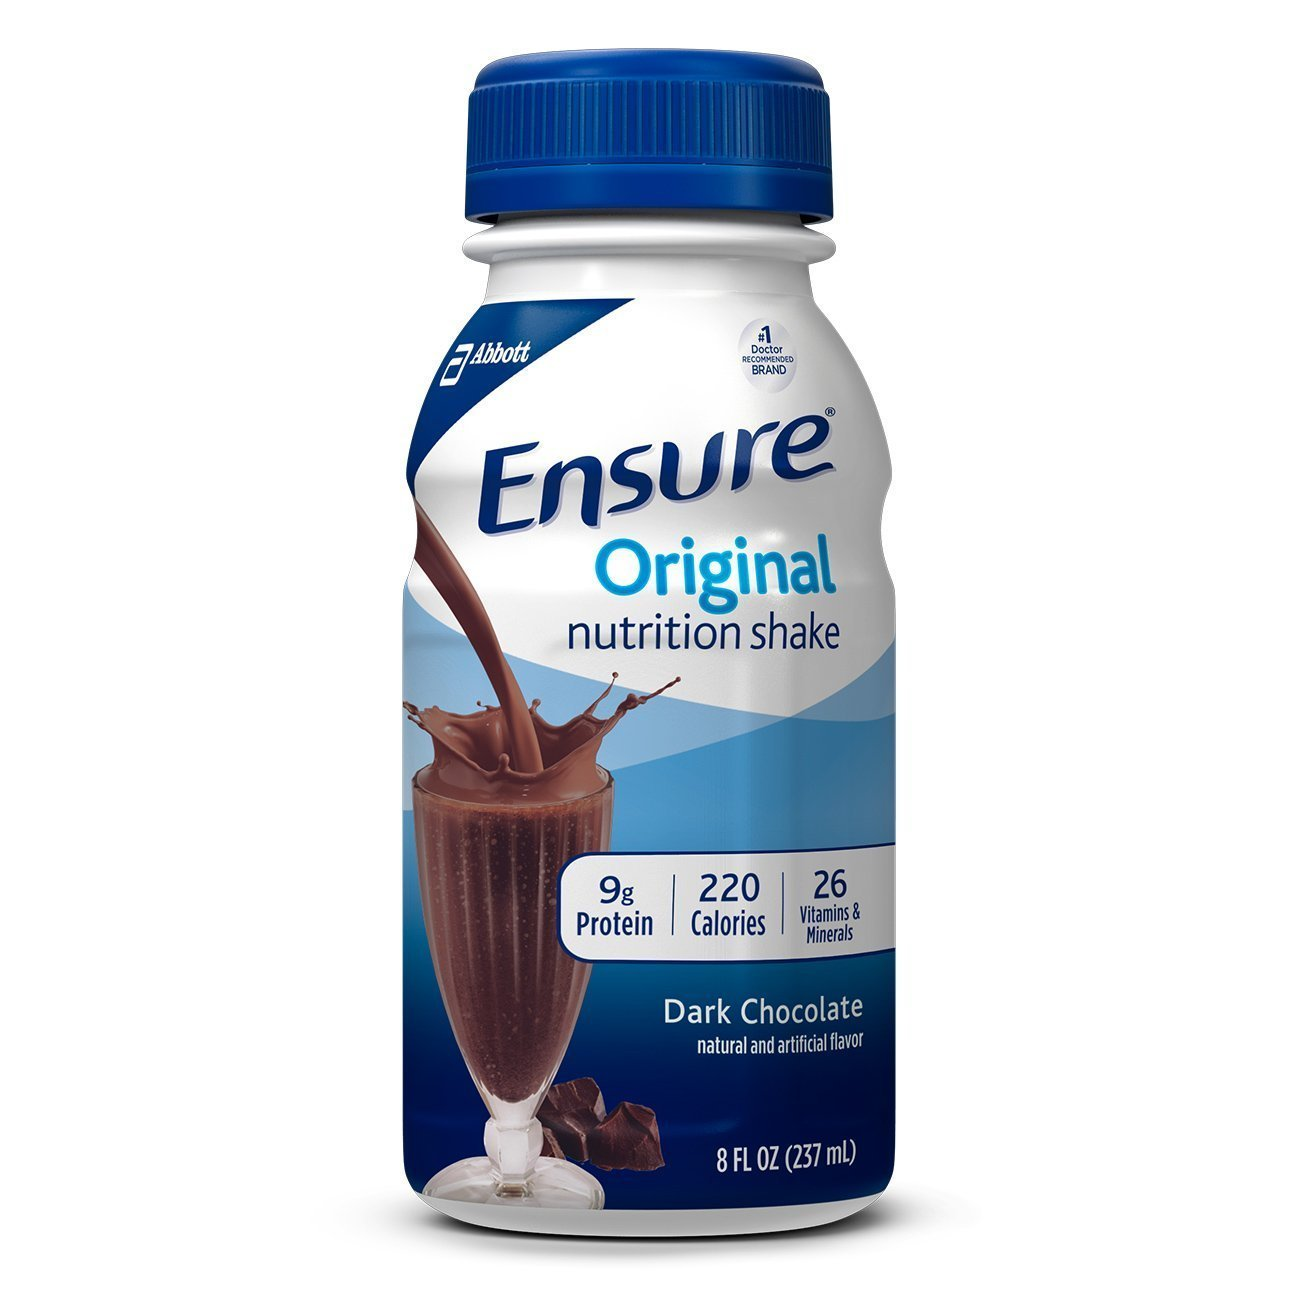 Ensure Original Nutrition Shake, Dark Chocolate, 8 Ounces, 12 Count